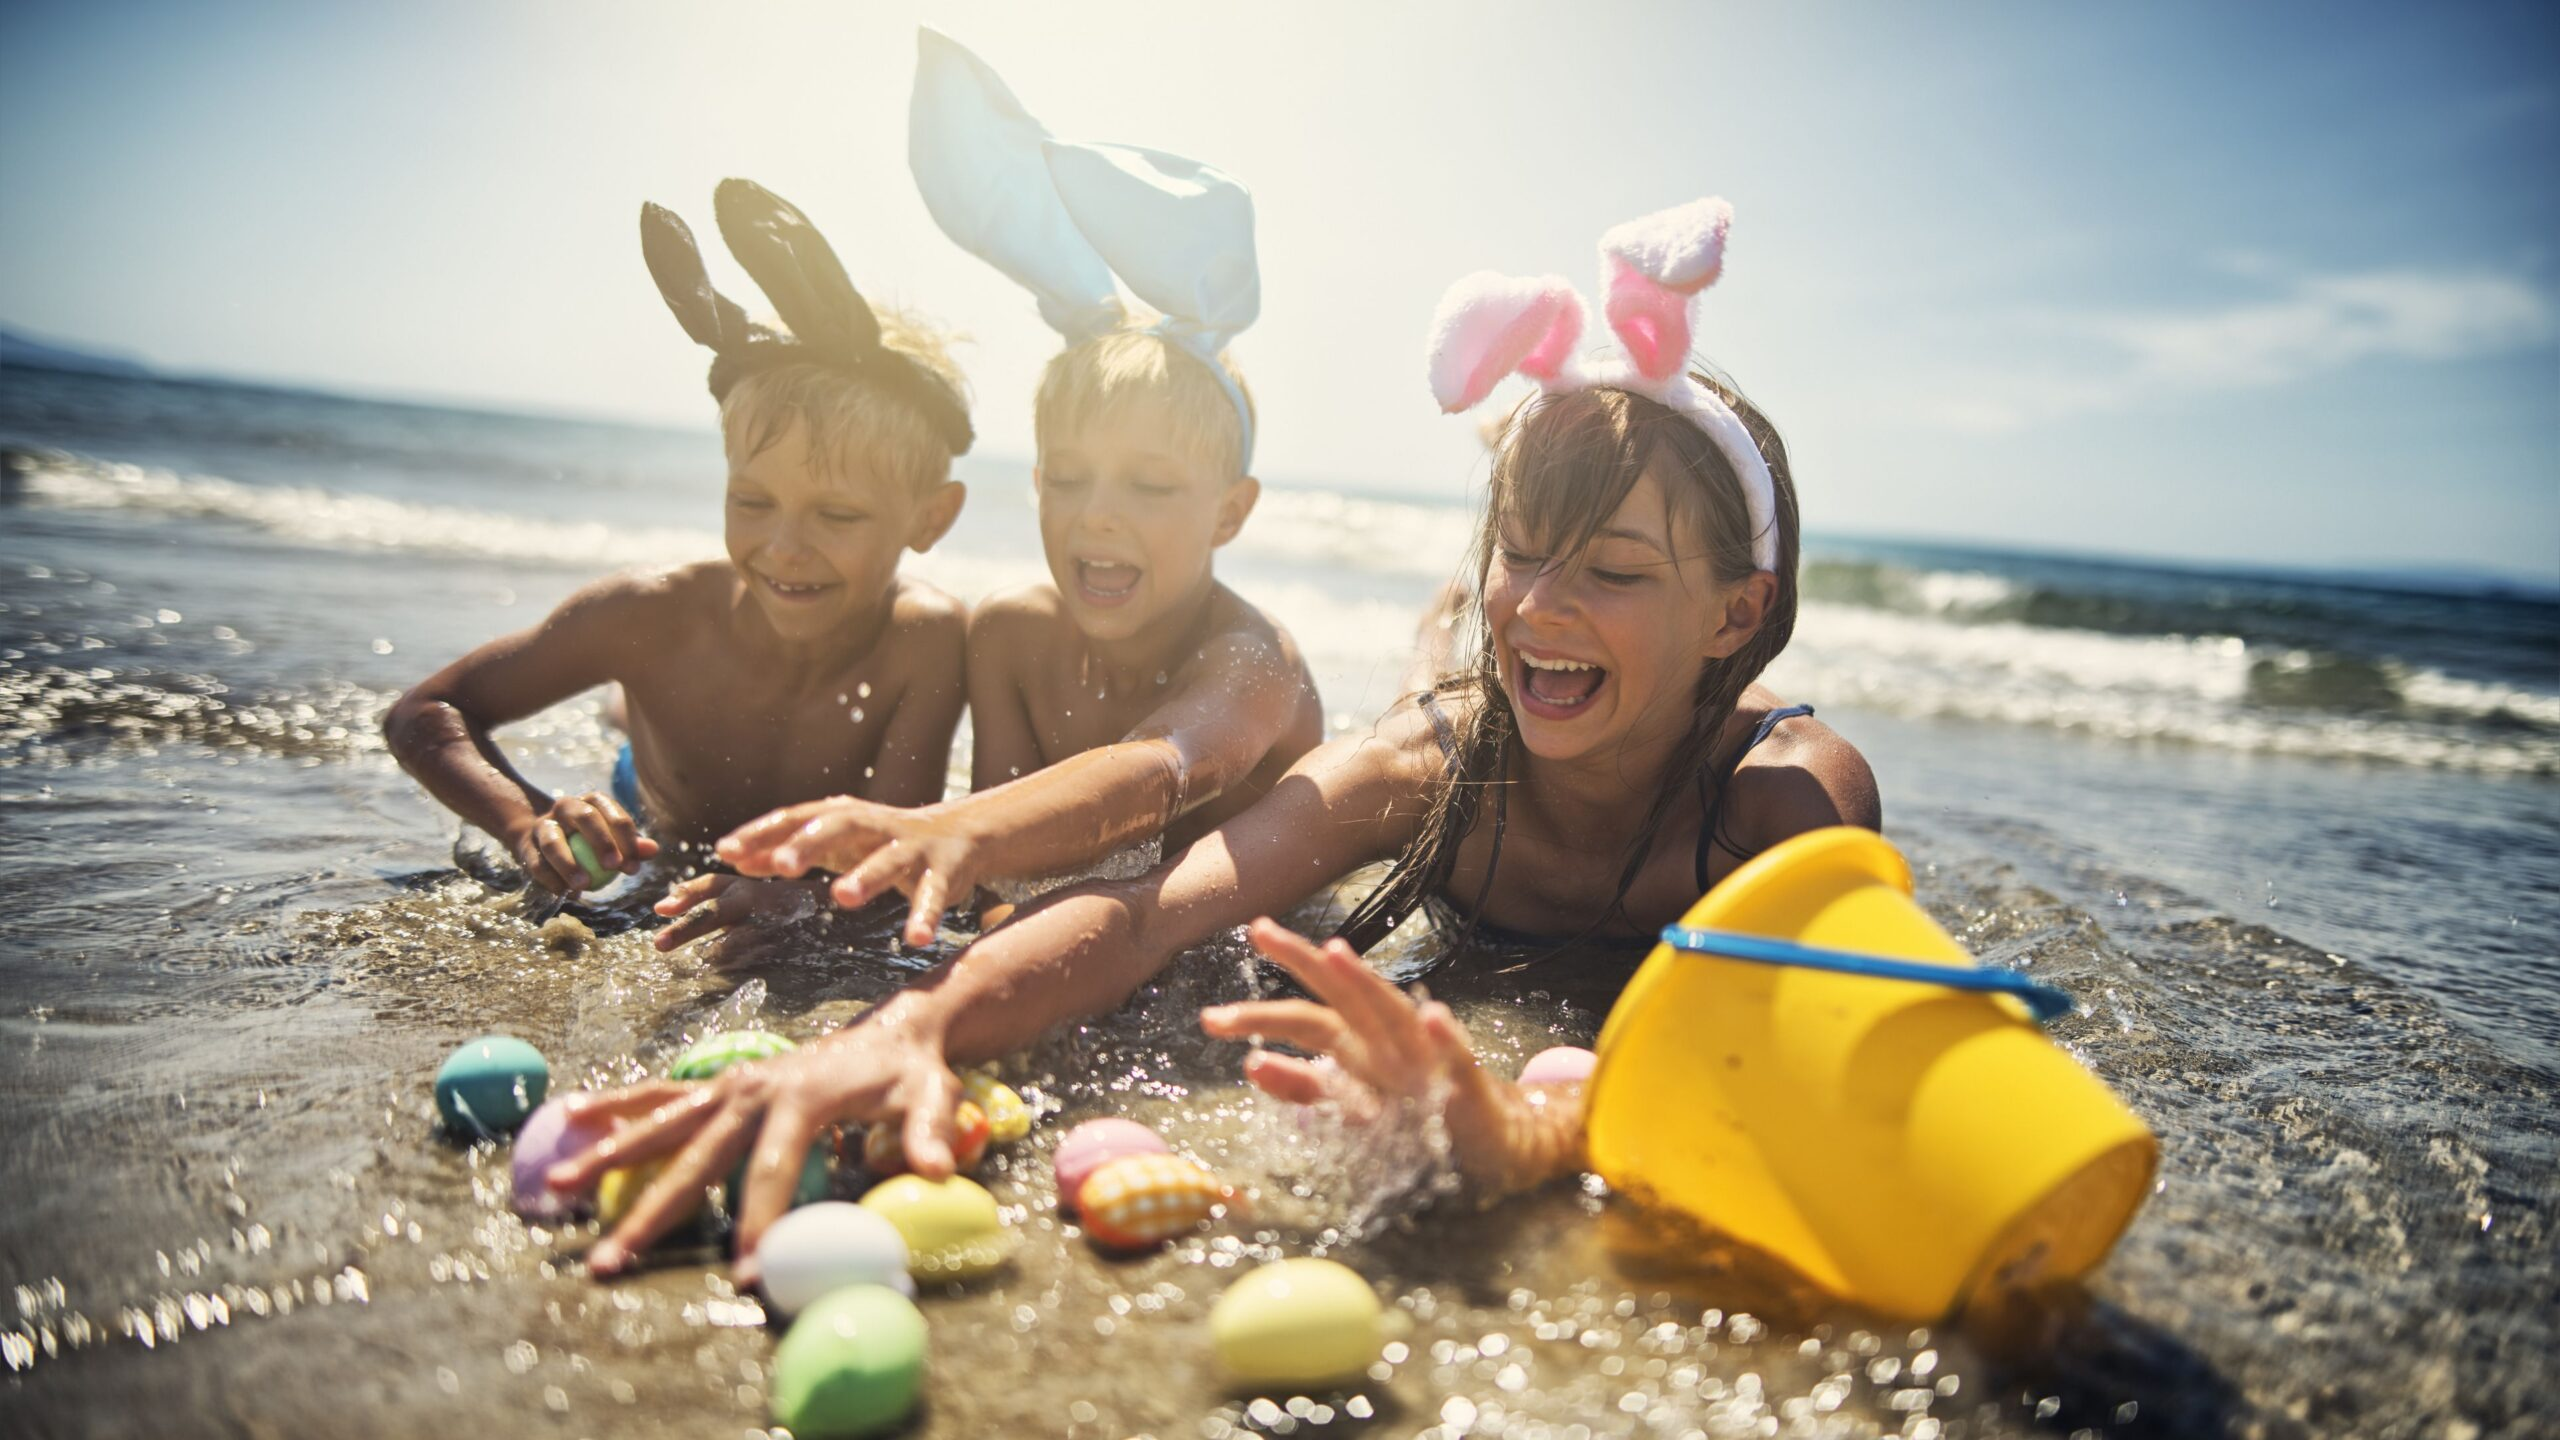 Kids playing in sea during summer easter 901432582 5c14485f46e0fb00014be1ff scaled